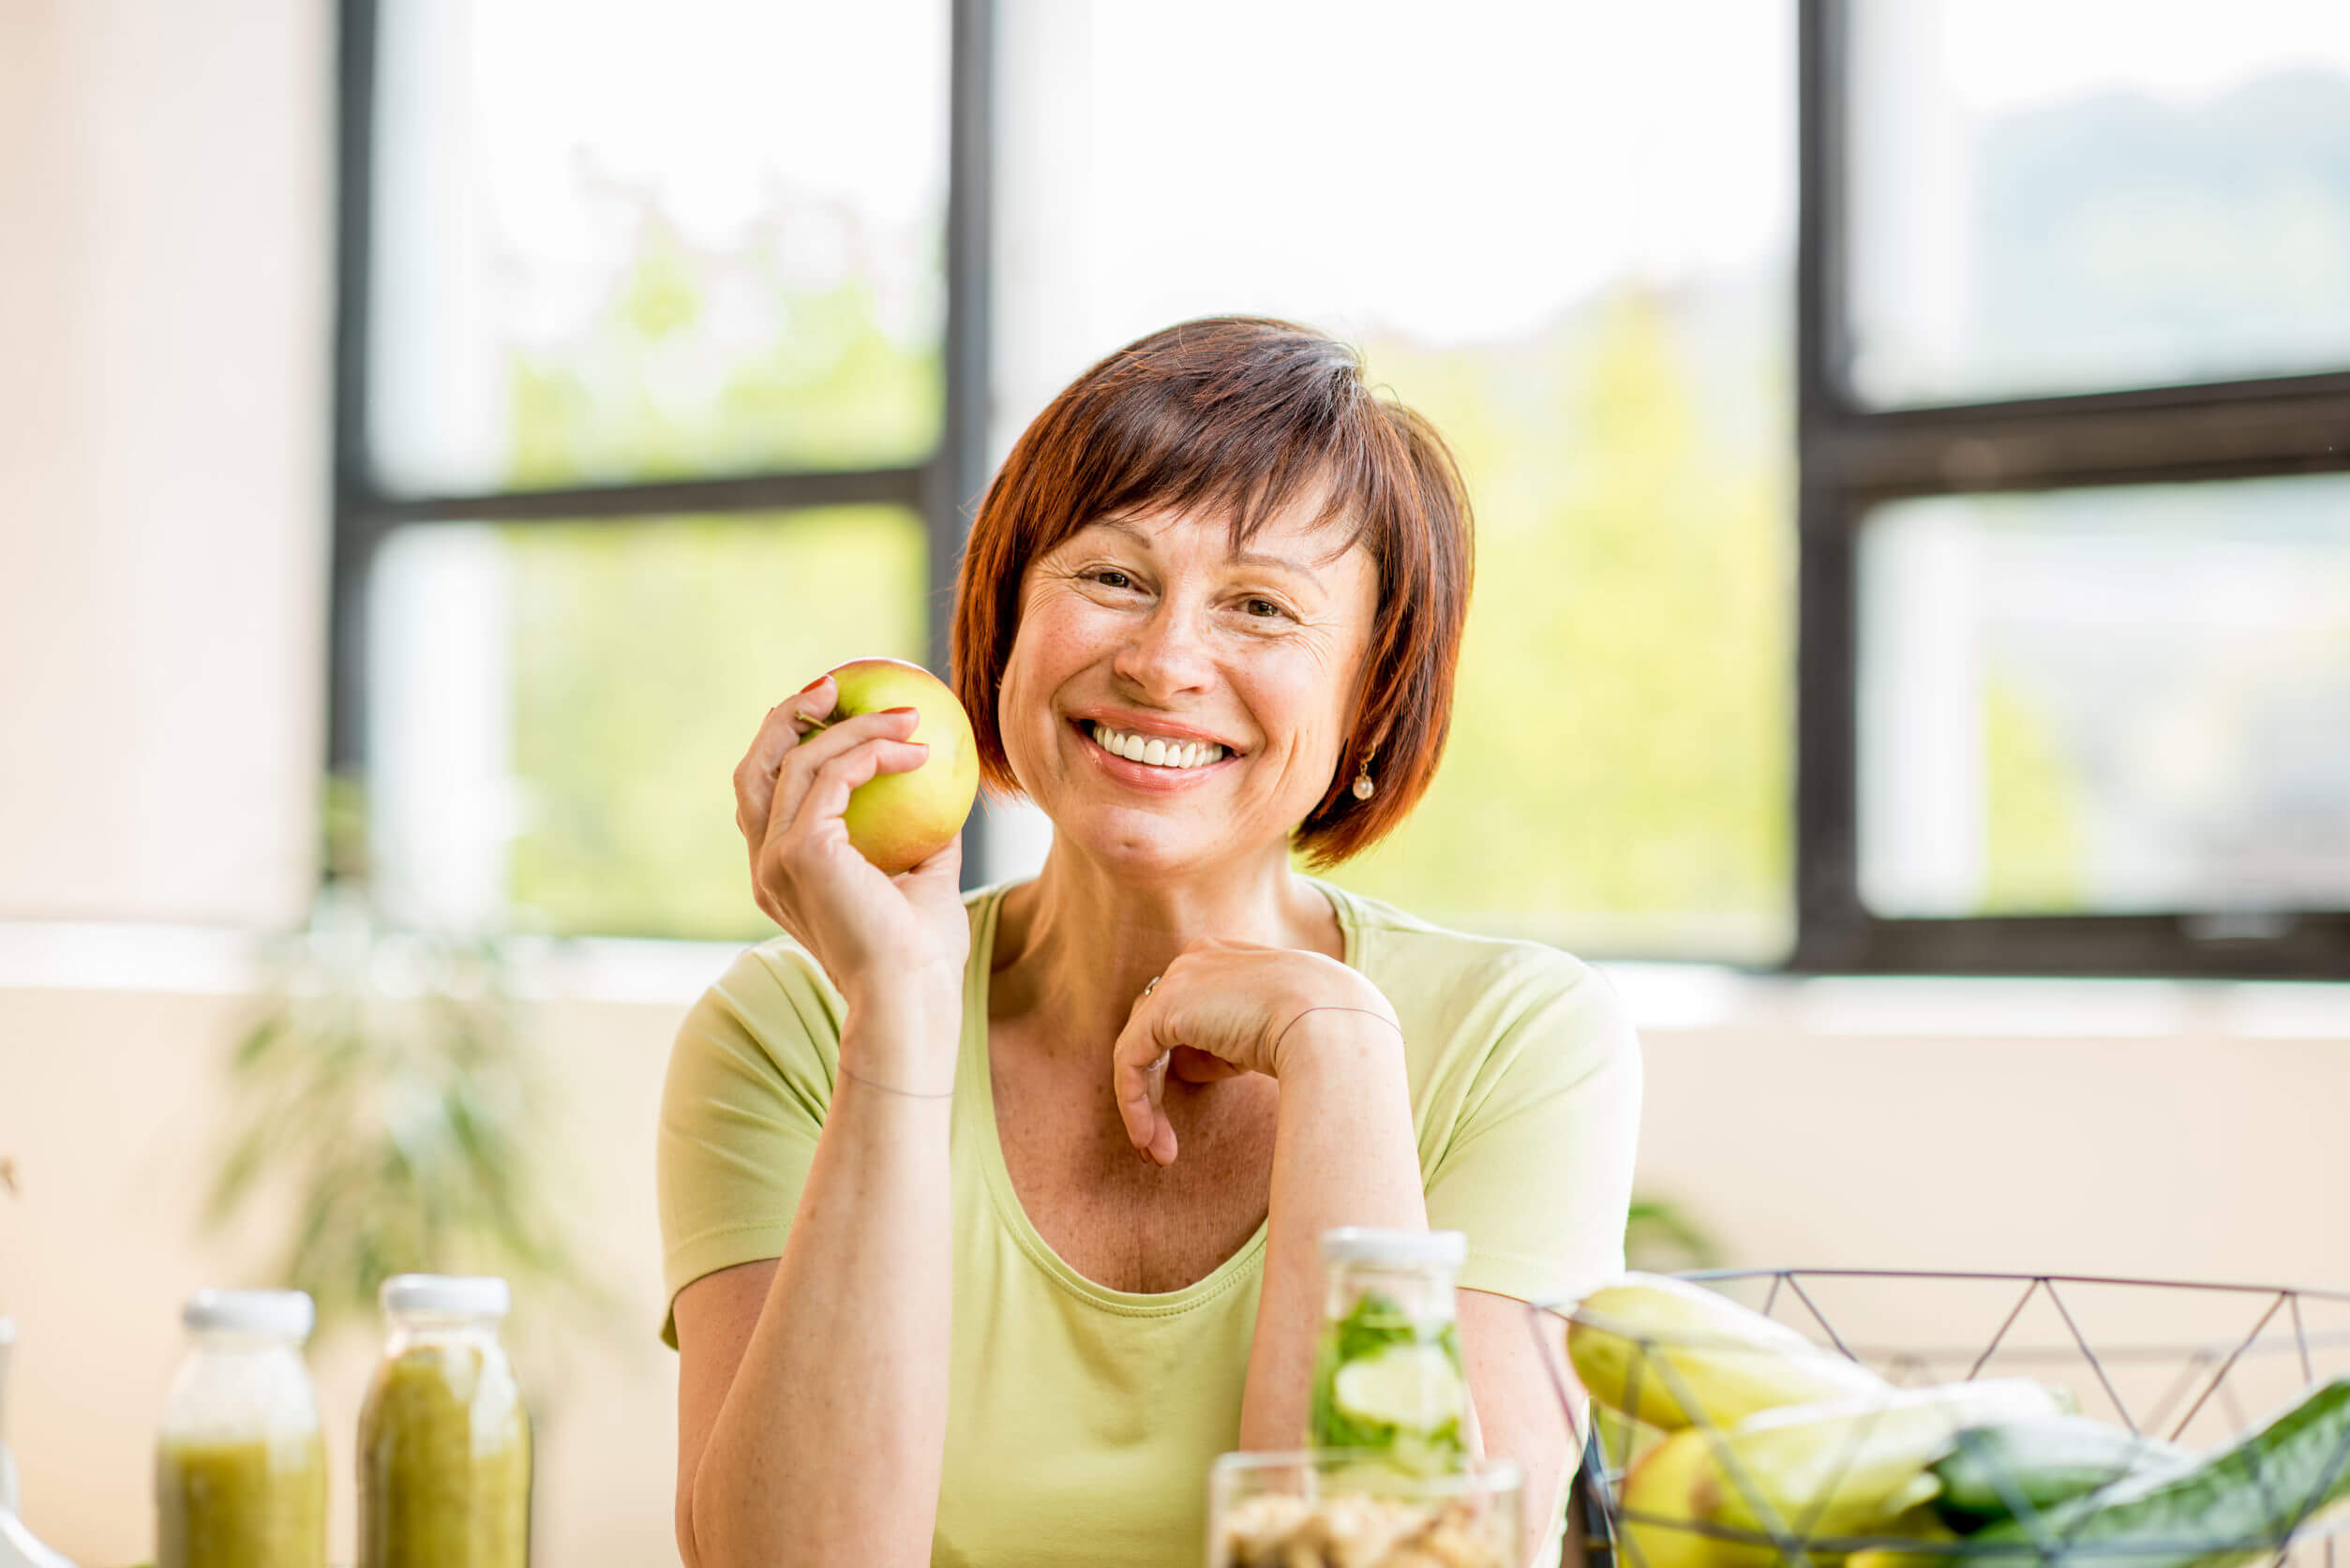 One of the advantages of the lipophilic diet is that the consumption of fruits and vegetables is favored.